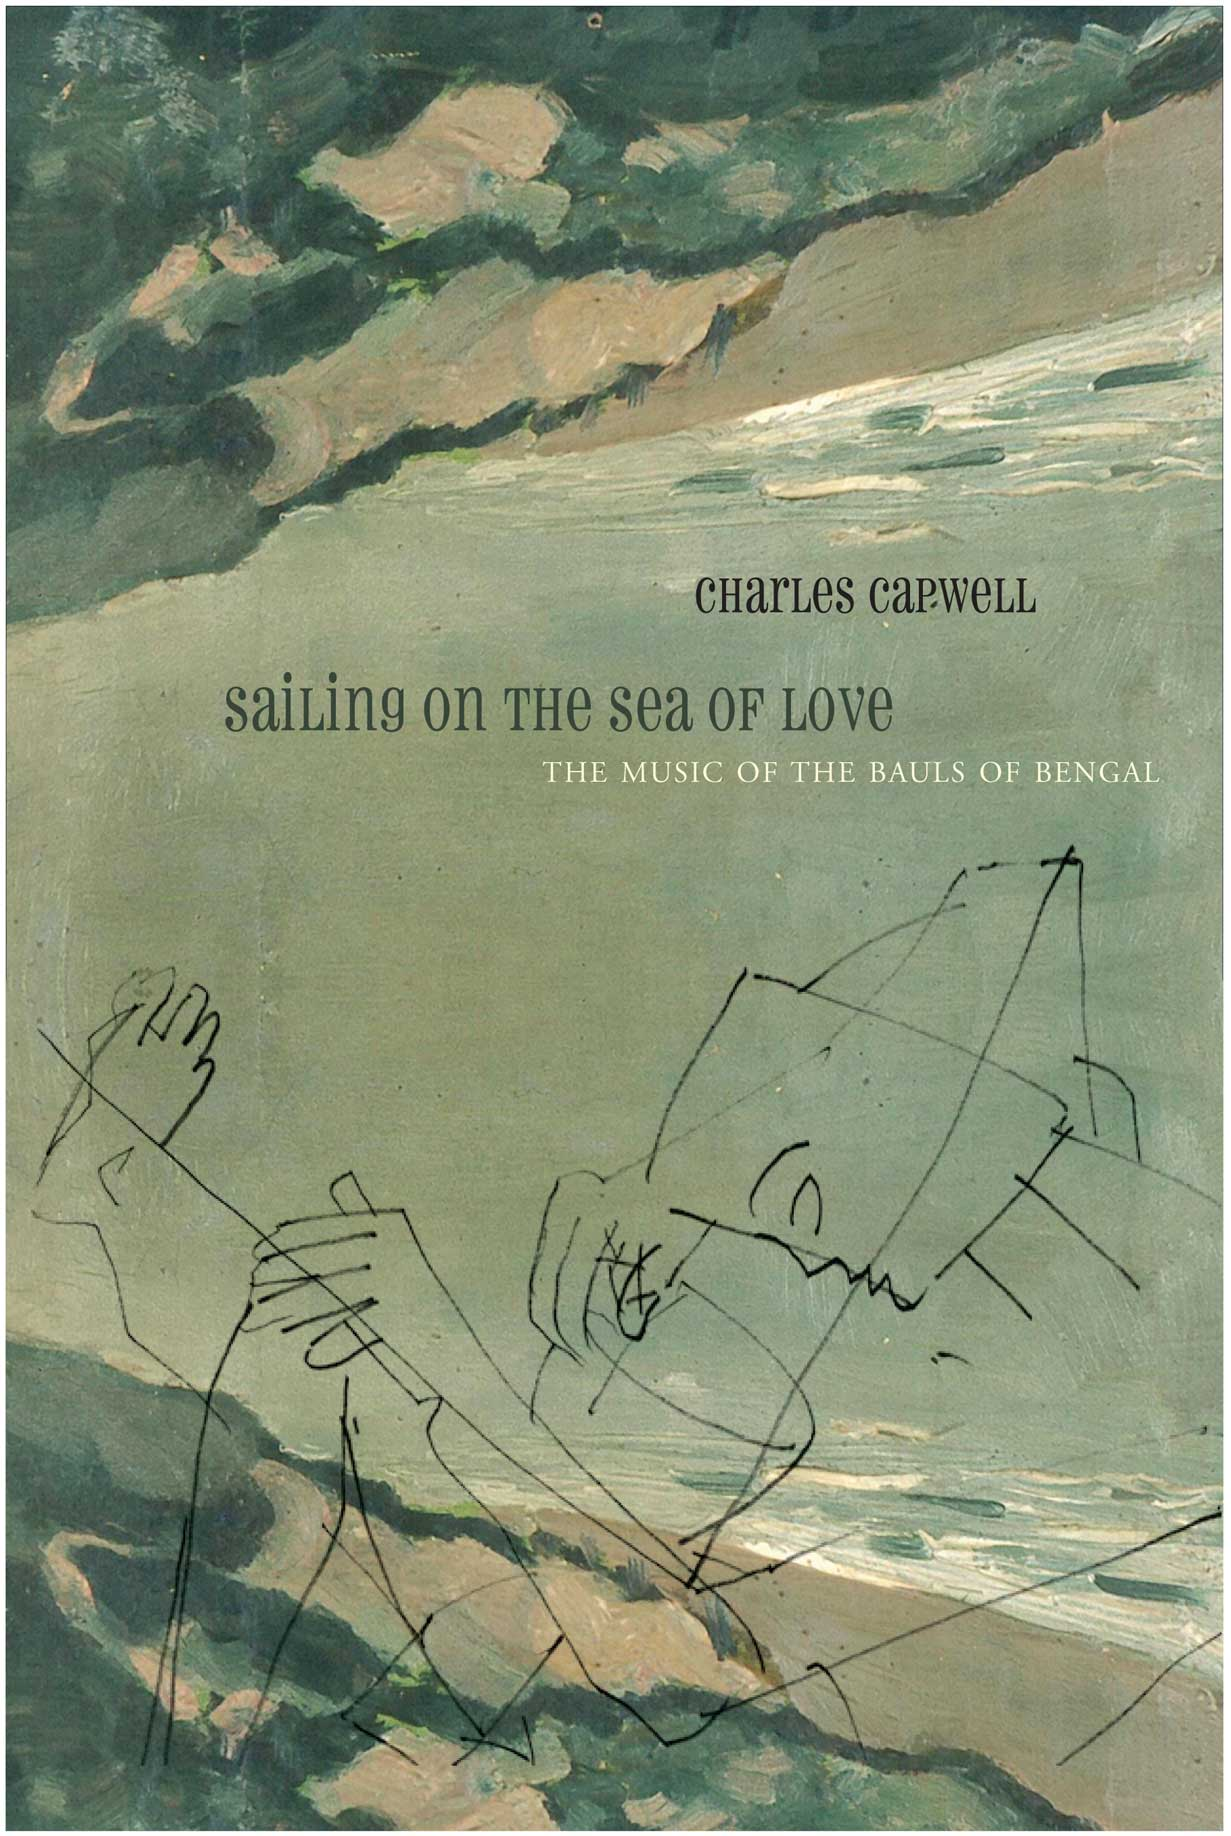 Sailing on the Sea of Love: The Music of the Bauls of Bengal by Charles Capwell | Seagull Books